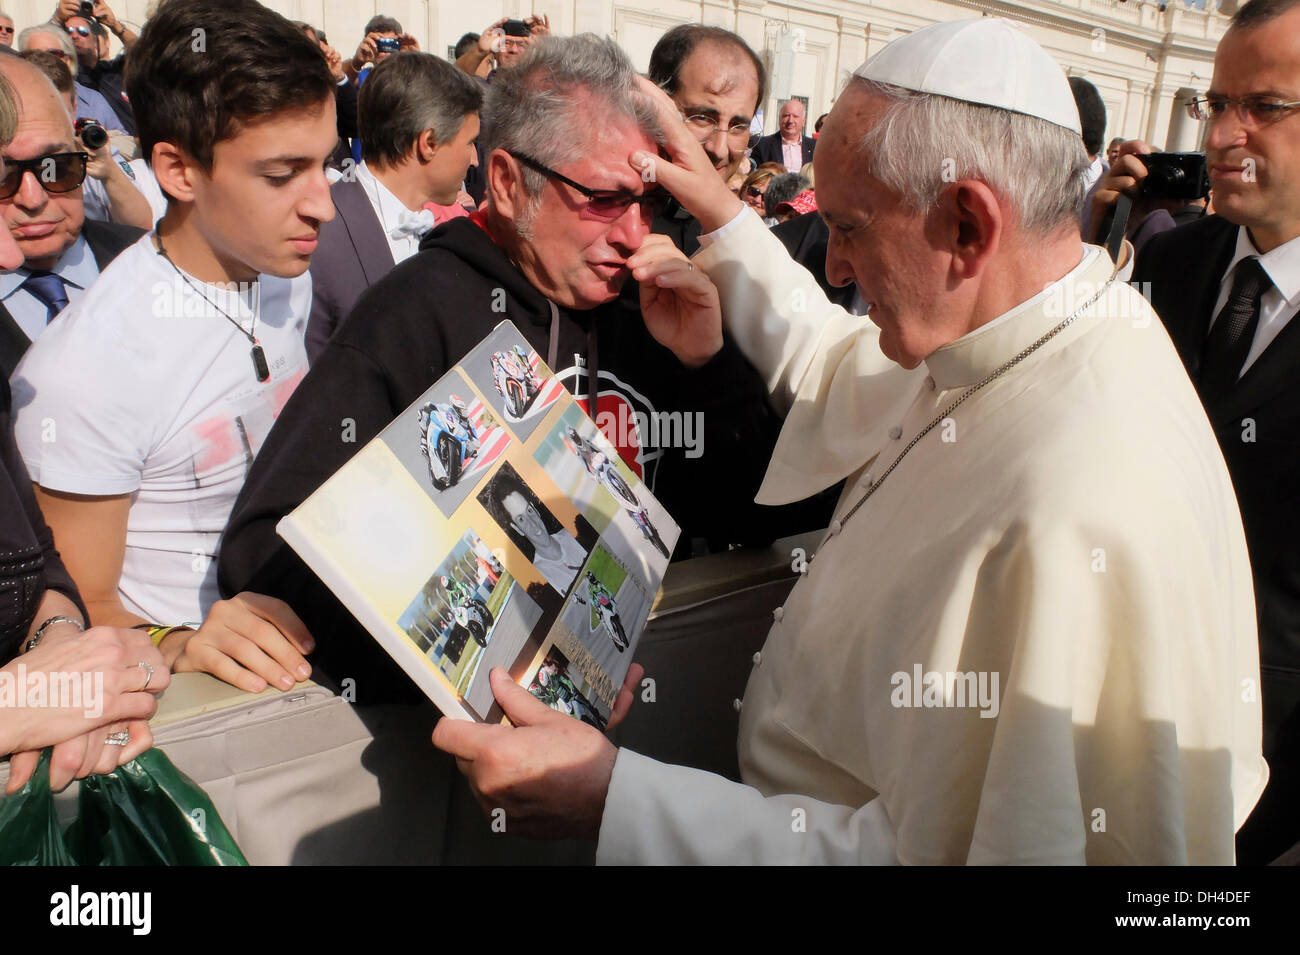 Vatican, Rome, Italy. 30th Oct, 2013. Vatican Pope Francesco blesses and embraces the parents of Andrea Antonelli at the hearing.The young motorcycle rider Andrea Antonelli died in competition in Moscow on July 21, 2013. - Stock Image